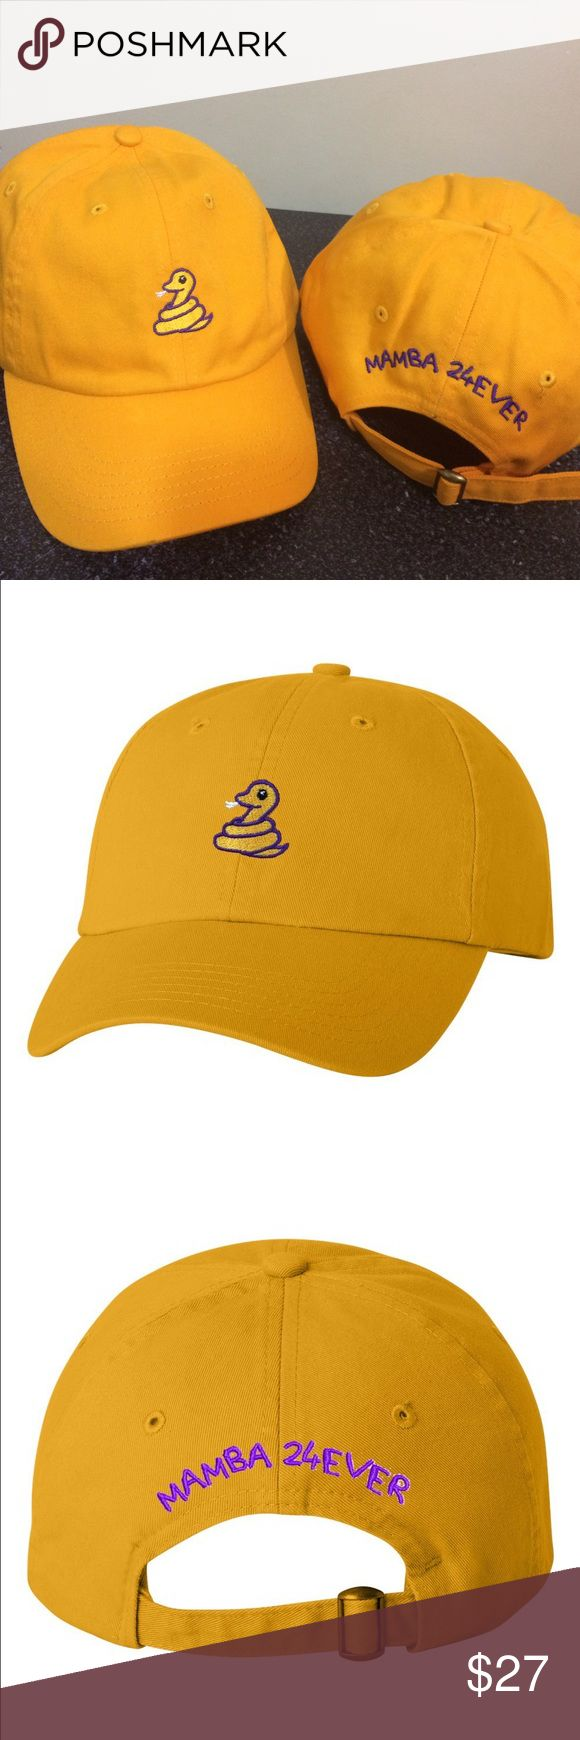 Mamba 24 Ever Kobe Bryant Adjustable Dad Cap - Hat Unisex Stitched/Embroidered Adjustable strap for a perfect fit.   (Due to dye and wash process there may be some slight variation in color and sizing) If you have any further questions just contact us and we will be happy to assist you! Value Cap Accessories Hats